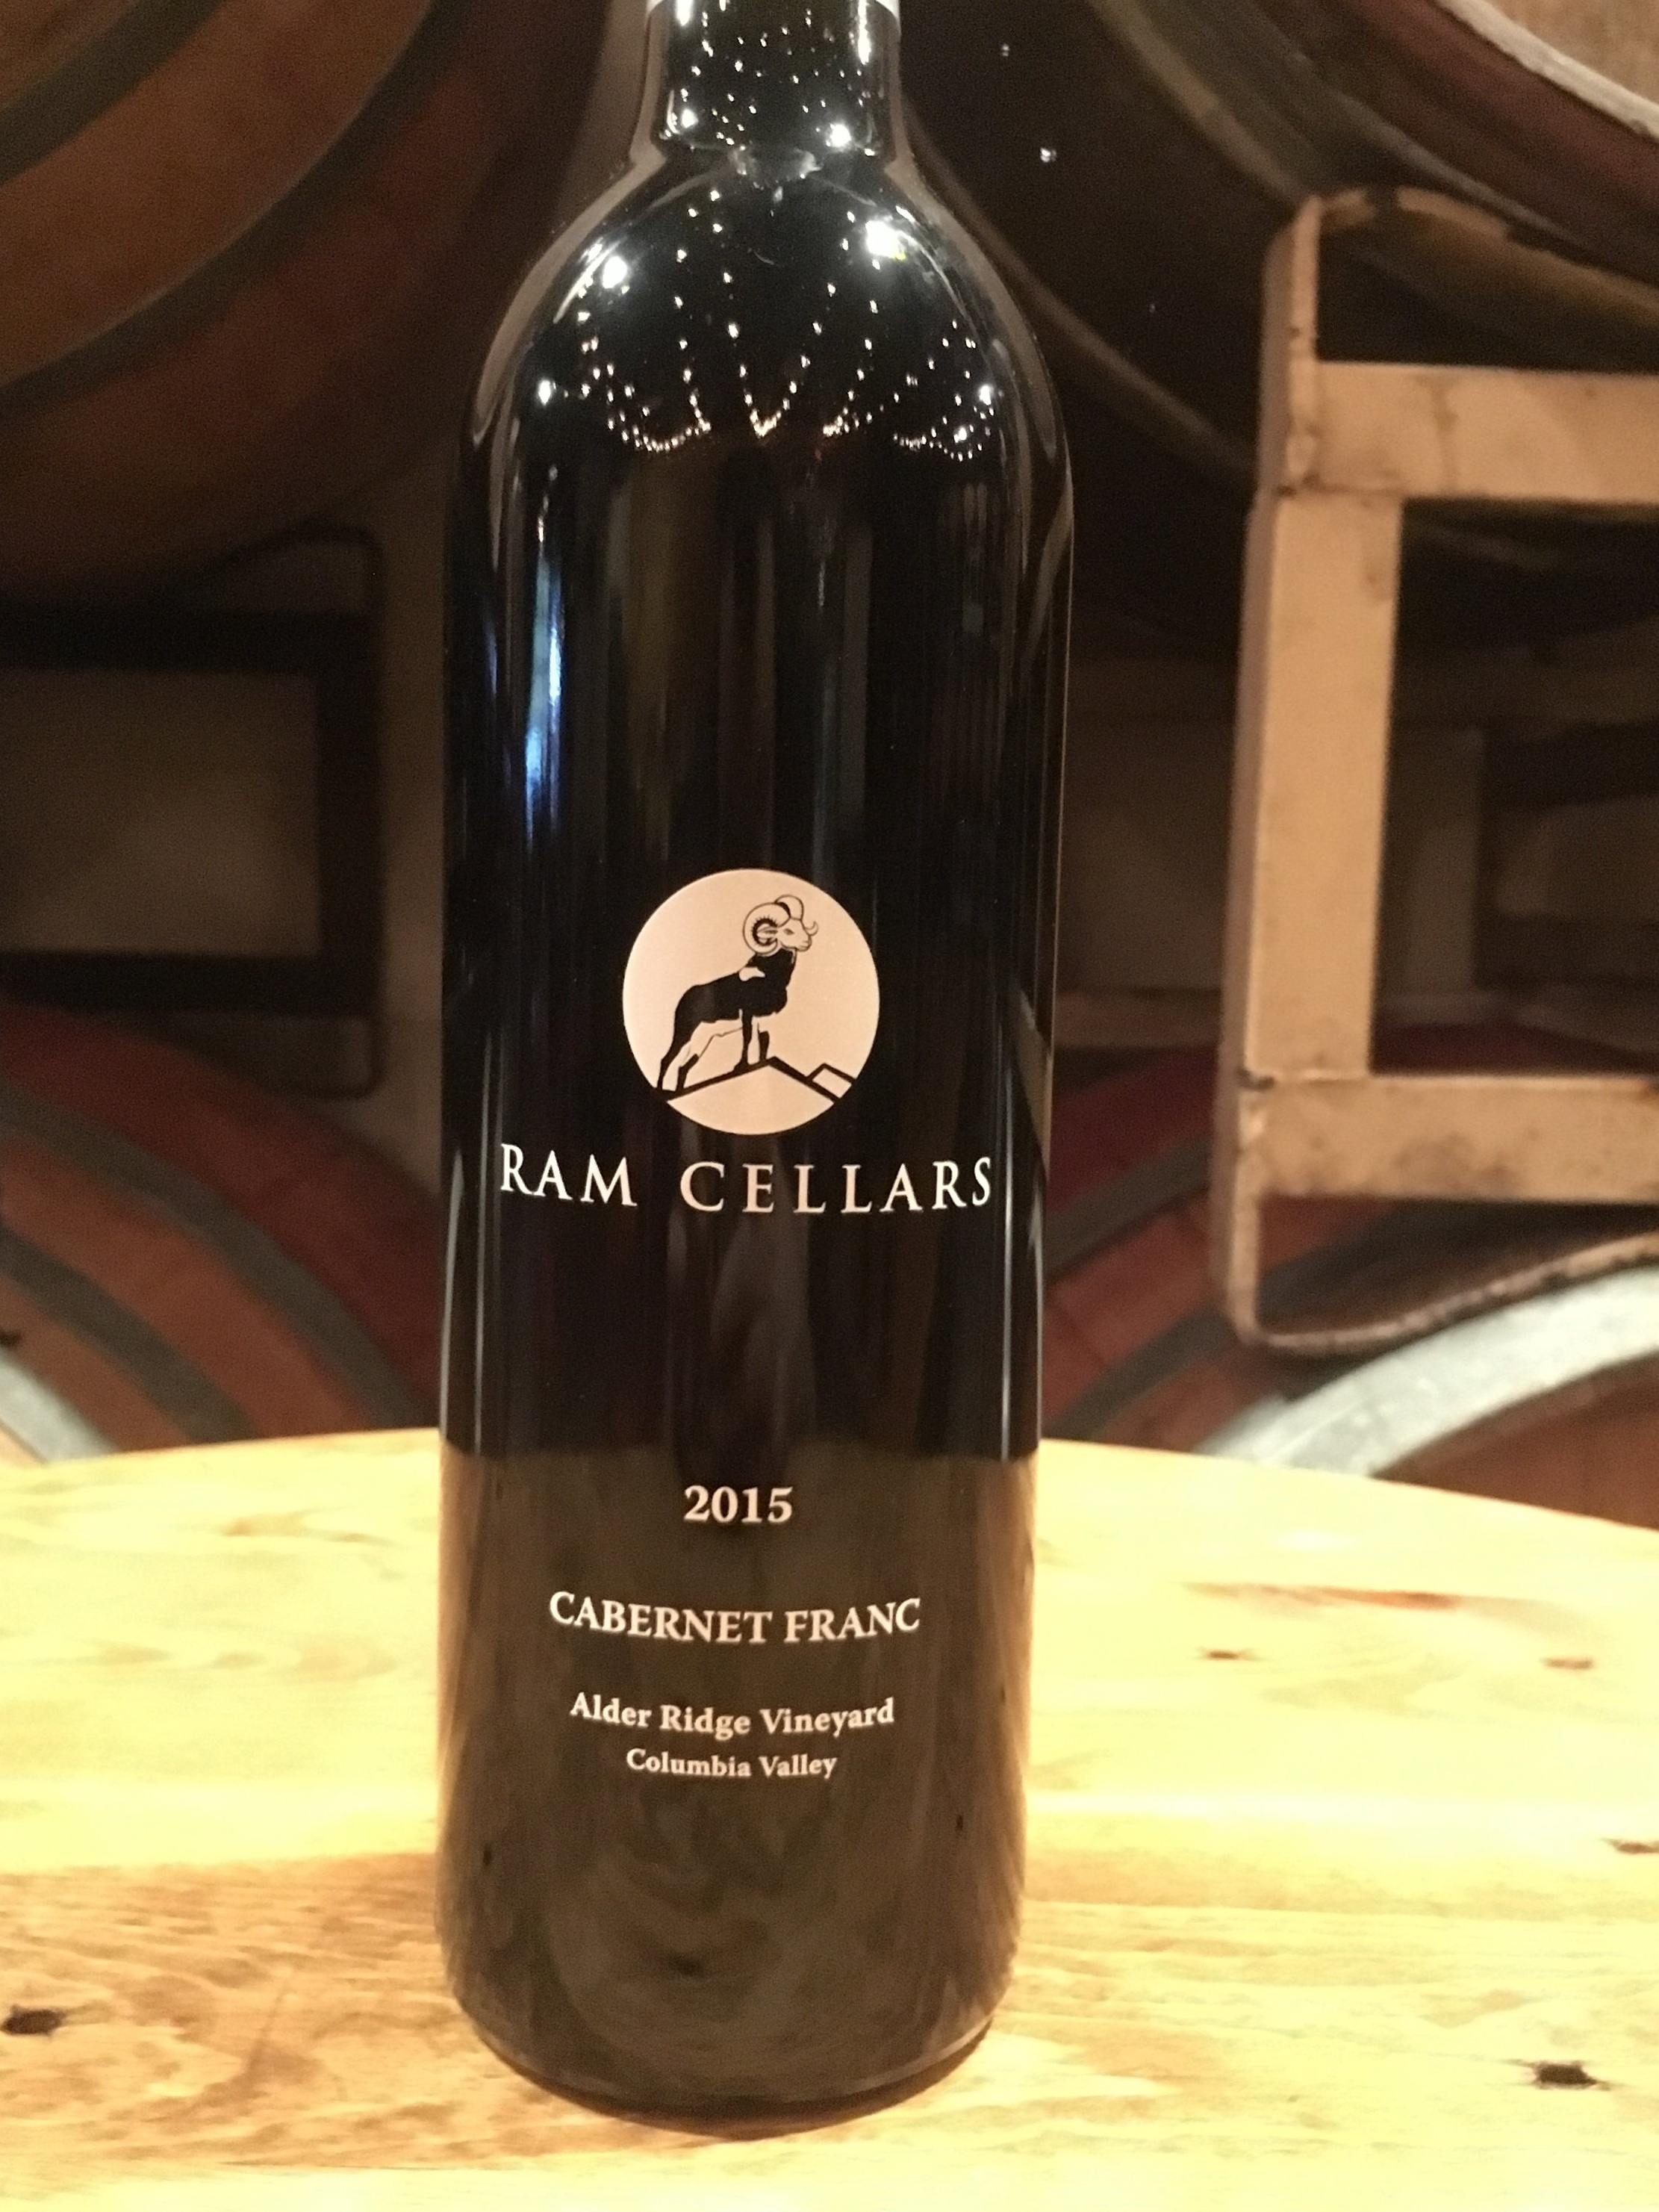 2015 Cabernet Franc$25 (SOLD OUT!)Our 2015 Cabernet Franc brings intrigue to your glass right from the start. Aromas of black currant, under-ripe raspberries, and jalapenos give way to flavors of sweet bell pepper, tobacco leaf, green peppercorn, and black currant jam. Drinkable now, this wine has outstanding aging potential! Balanced and approachable, this wine pairs well with friends and family, as well as poultry, lamb, pork, pasta, and grilled beef! - Alder Ridge, Washington State, 70 cases produced